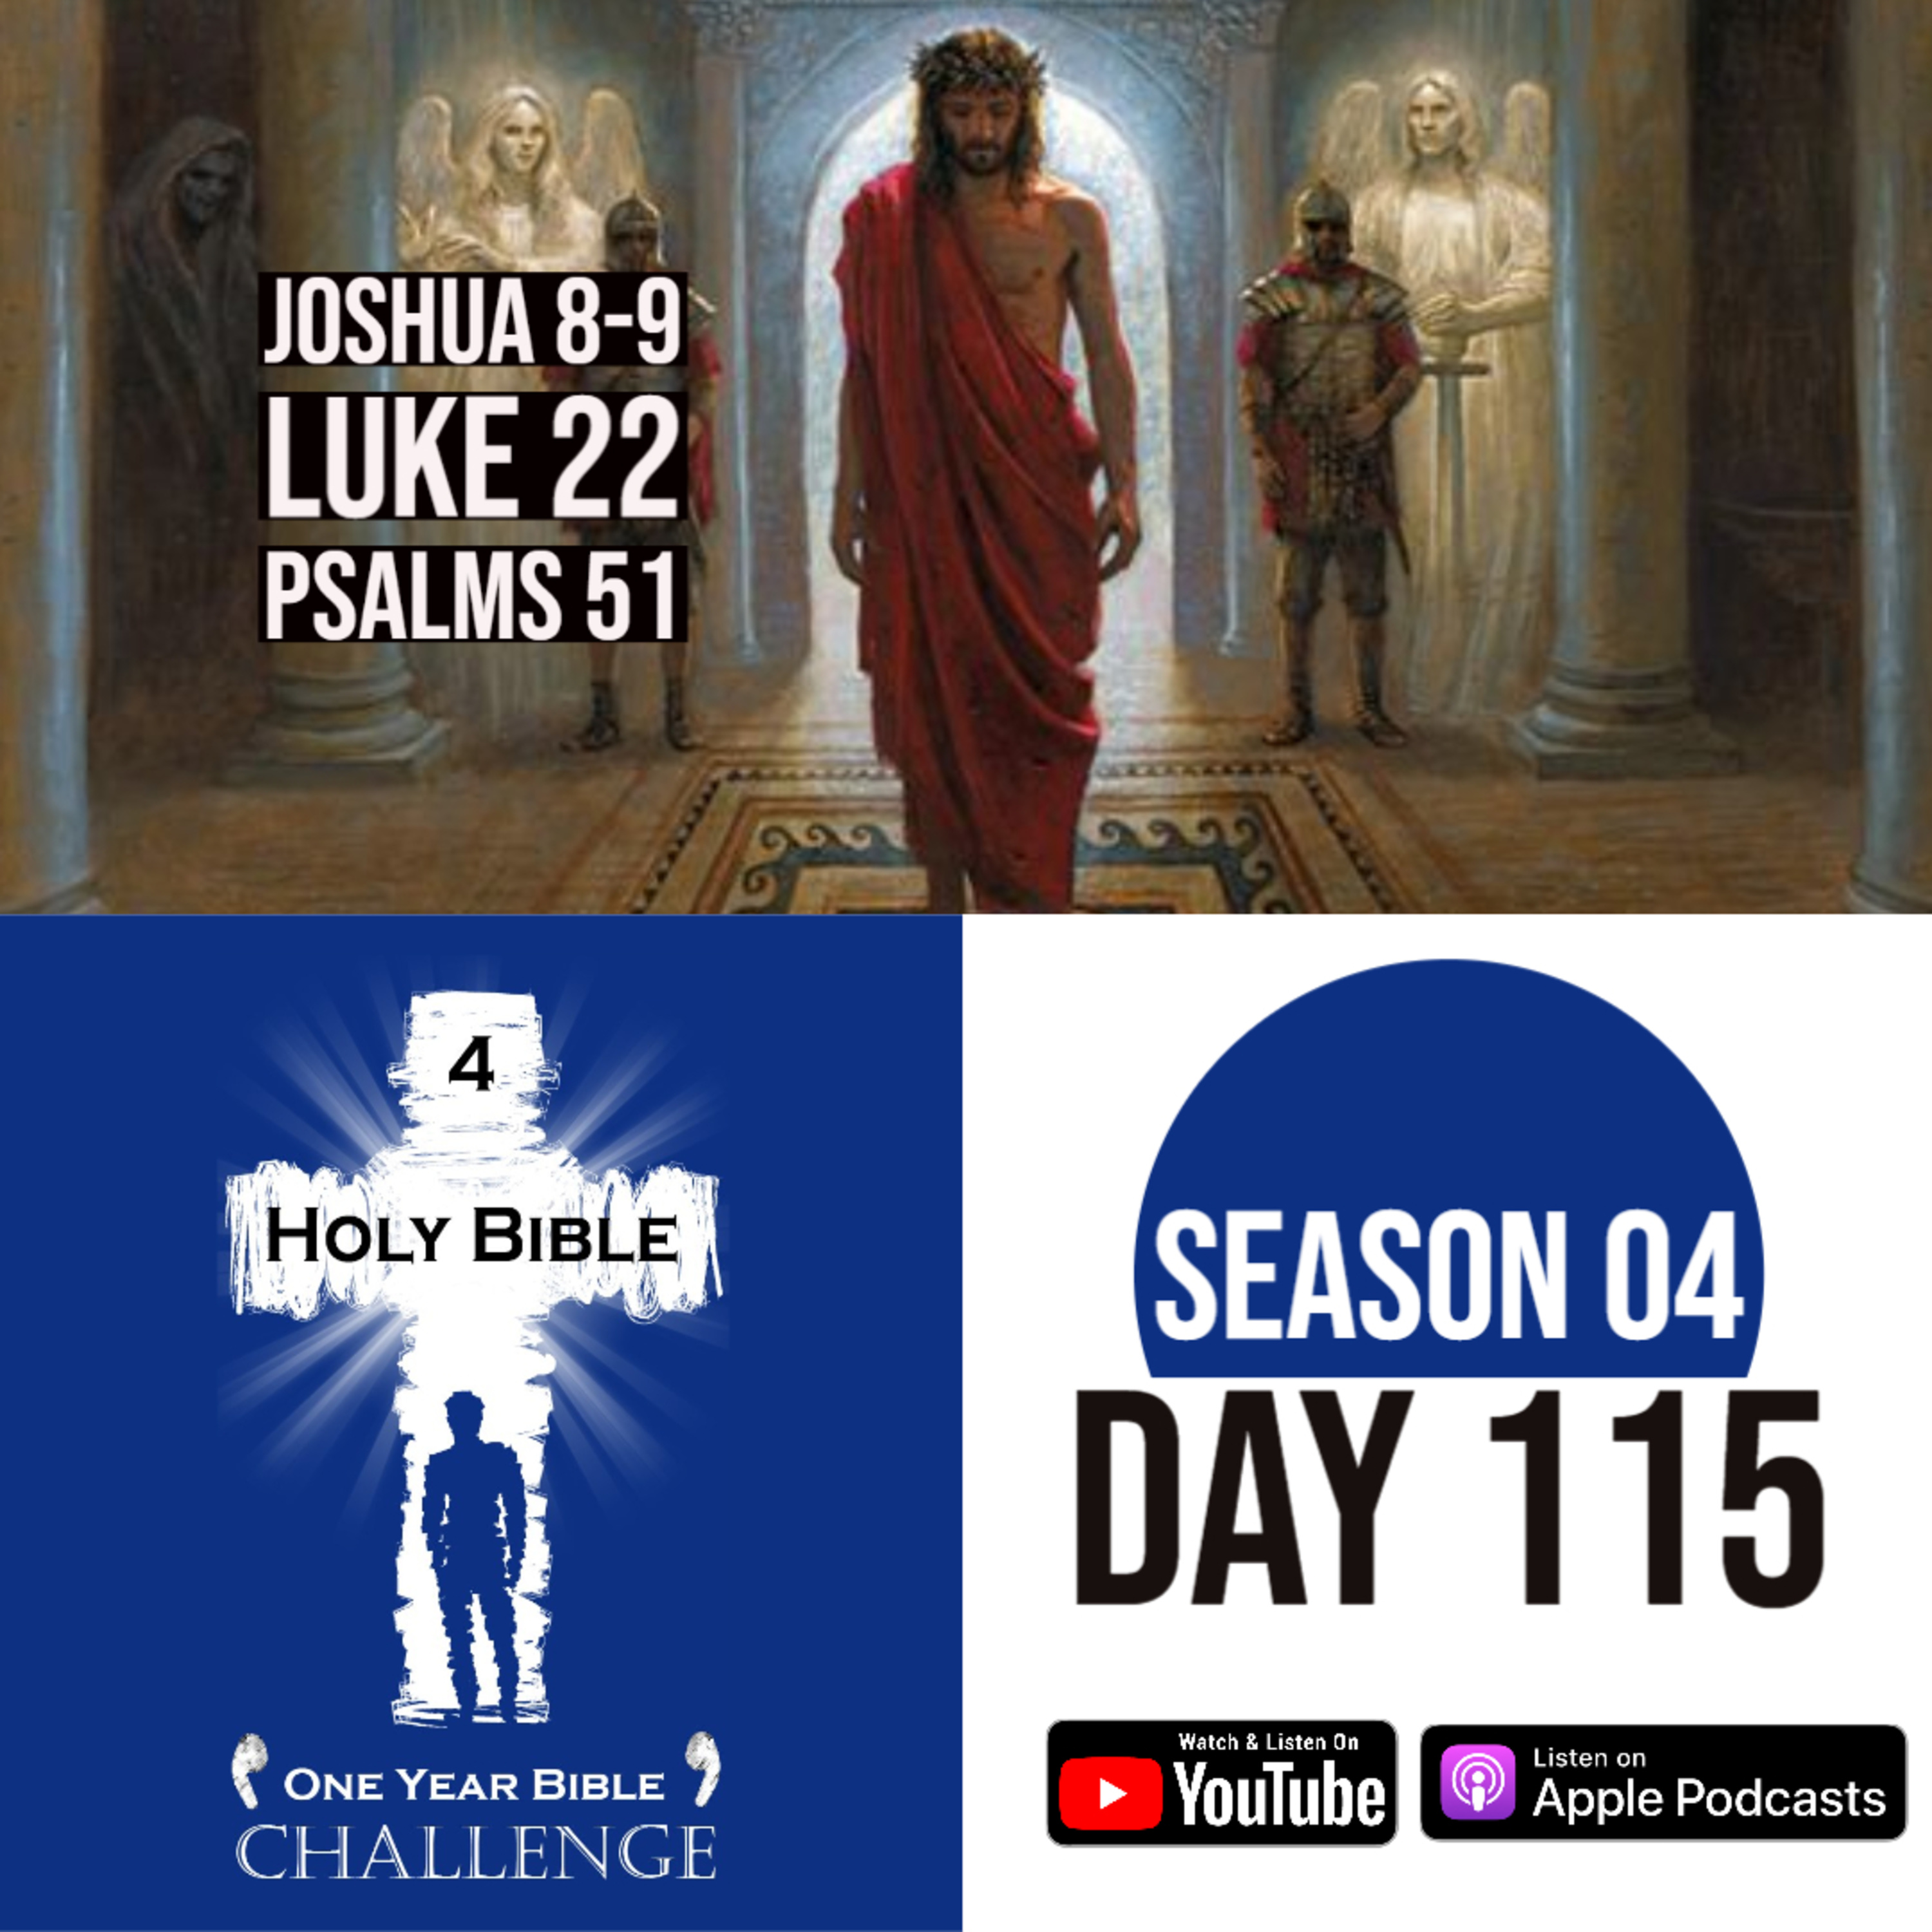 Day 115 | Joshua burns the city of Ai | A trap is set by his enemies | Jesus is punished by Pilate, the Roman Prefect of Judea | 2020